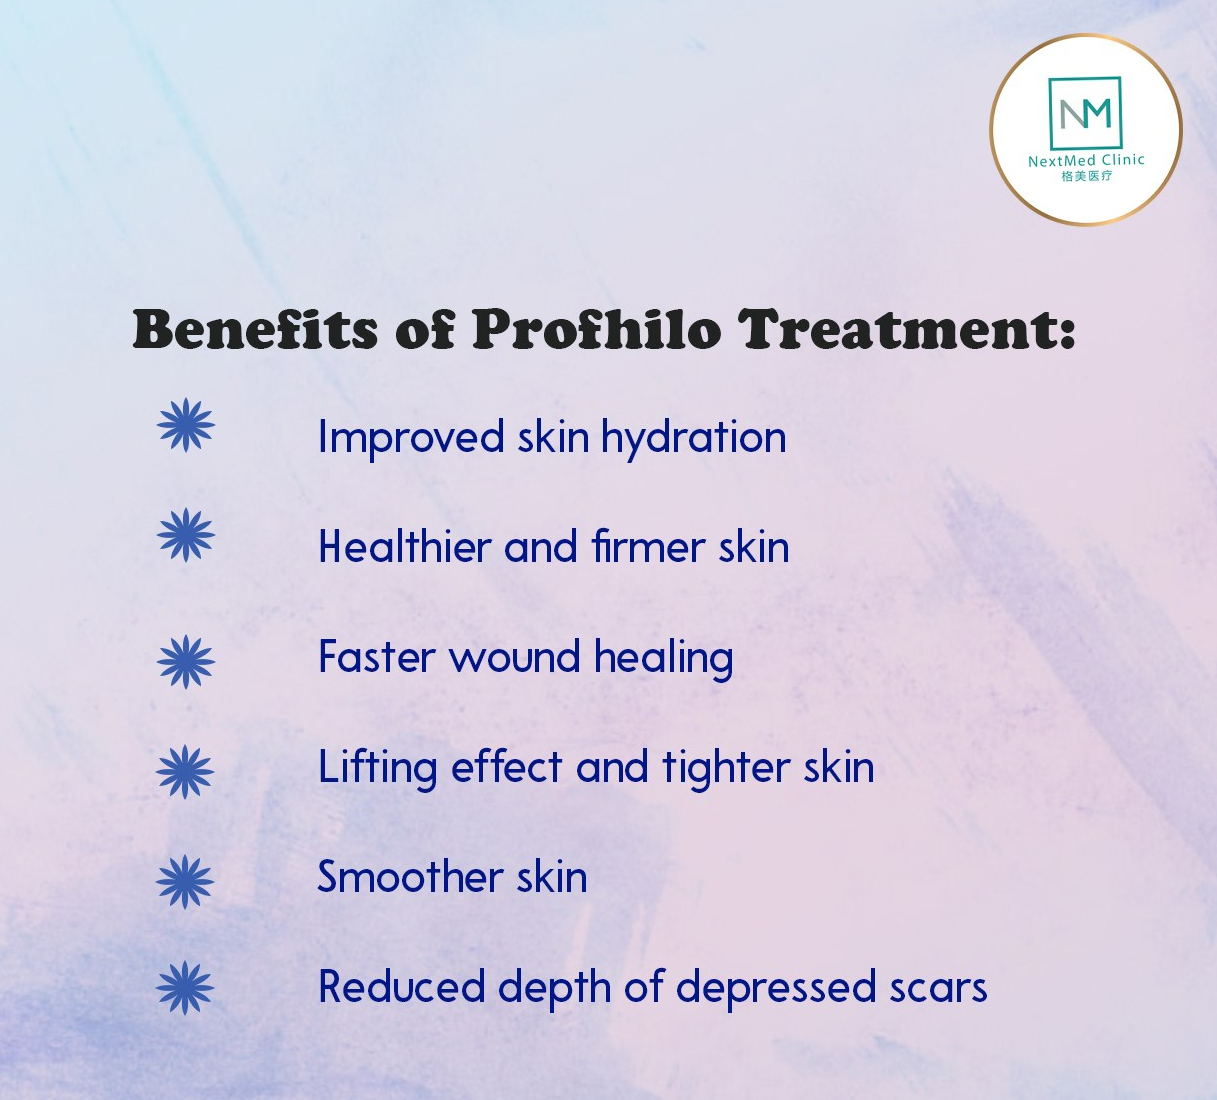 benefit of profhilo